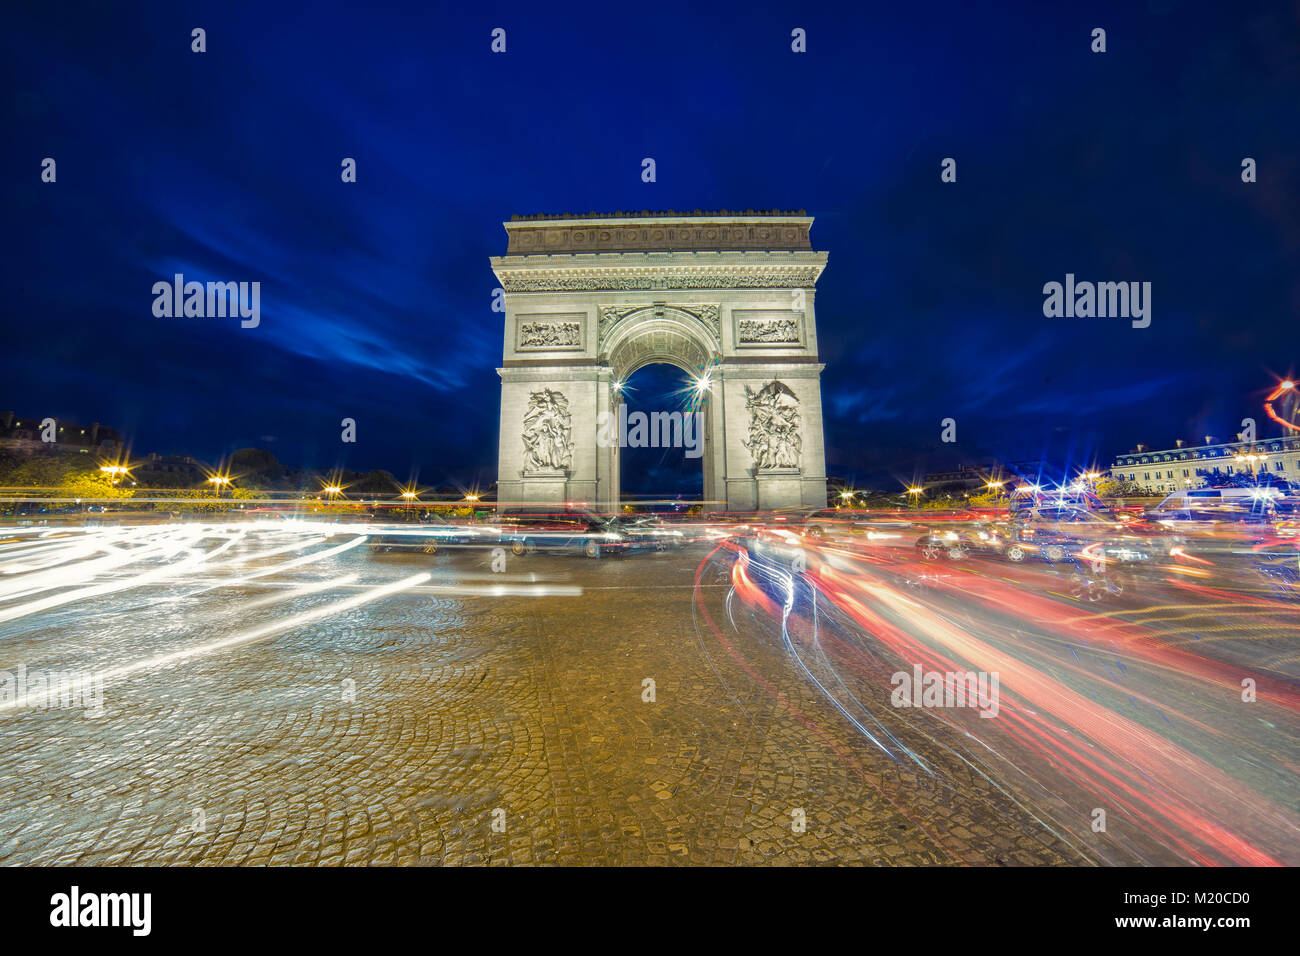 View of arc de triomphe during the twilight and long exposure image with light trails - Stock Image